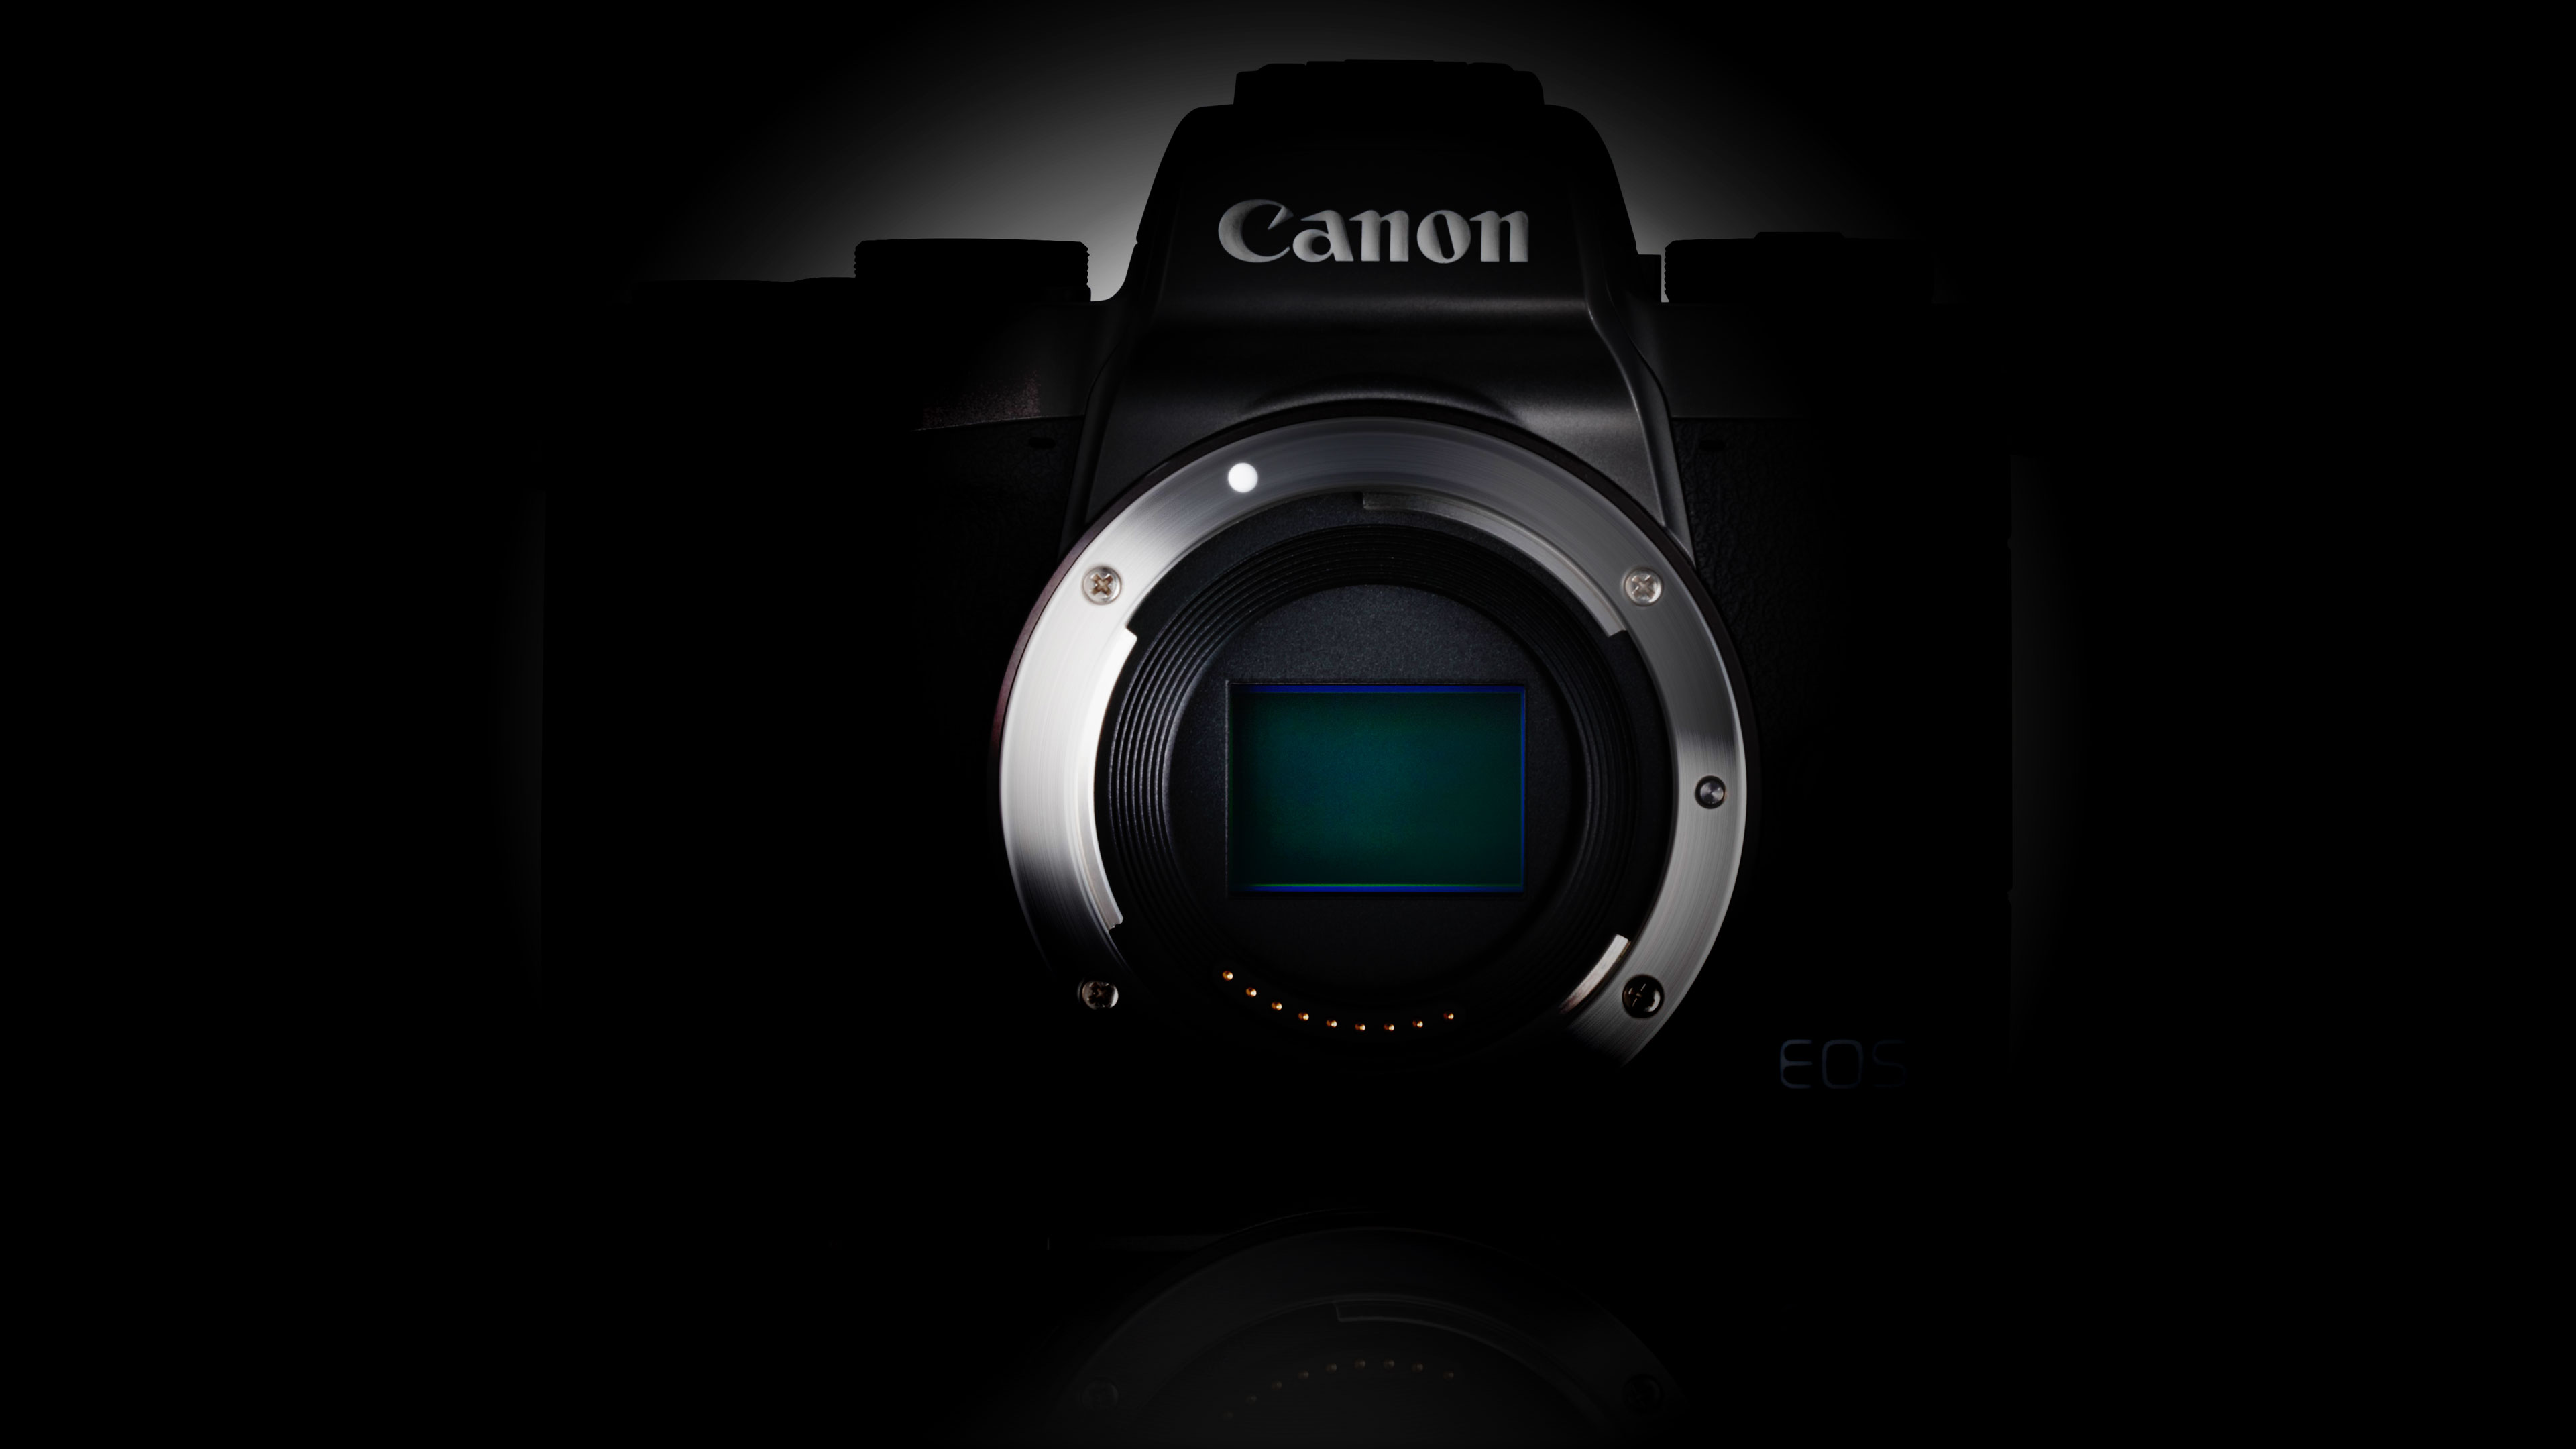 Rumors emerge of a new Canon APS-C mirrorless model as soon